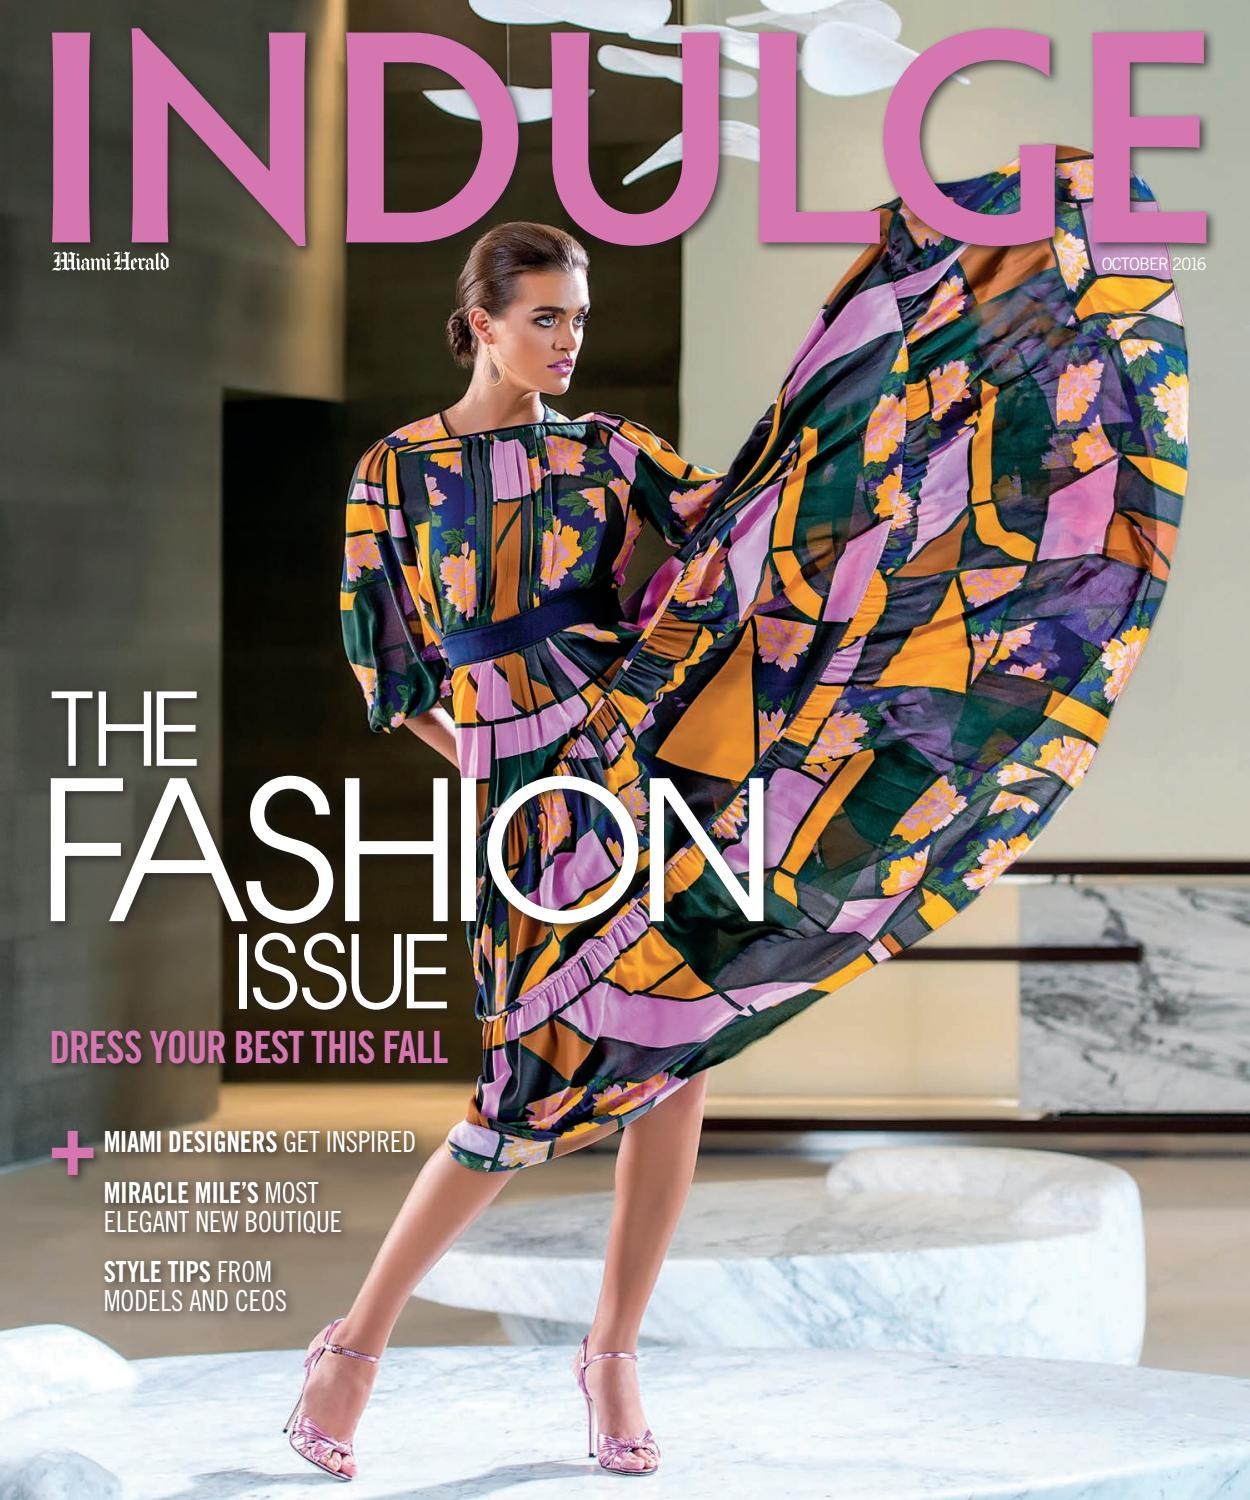 323dac71fab9c INDULGE October 2016 by Mike coto - issuu